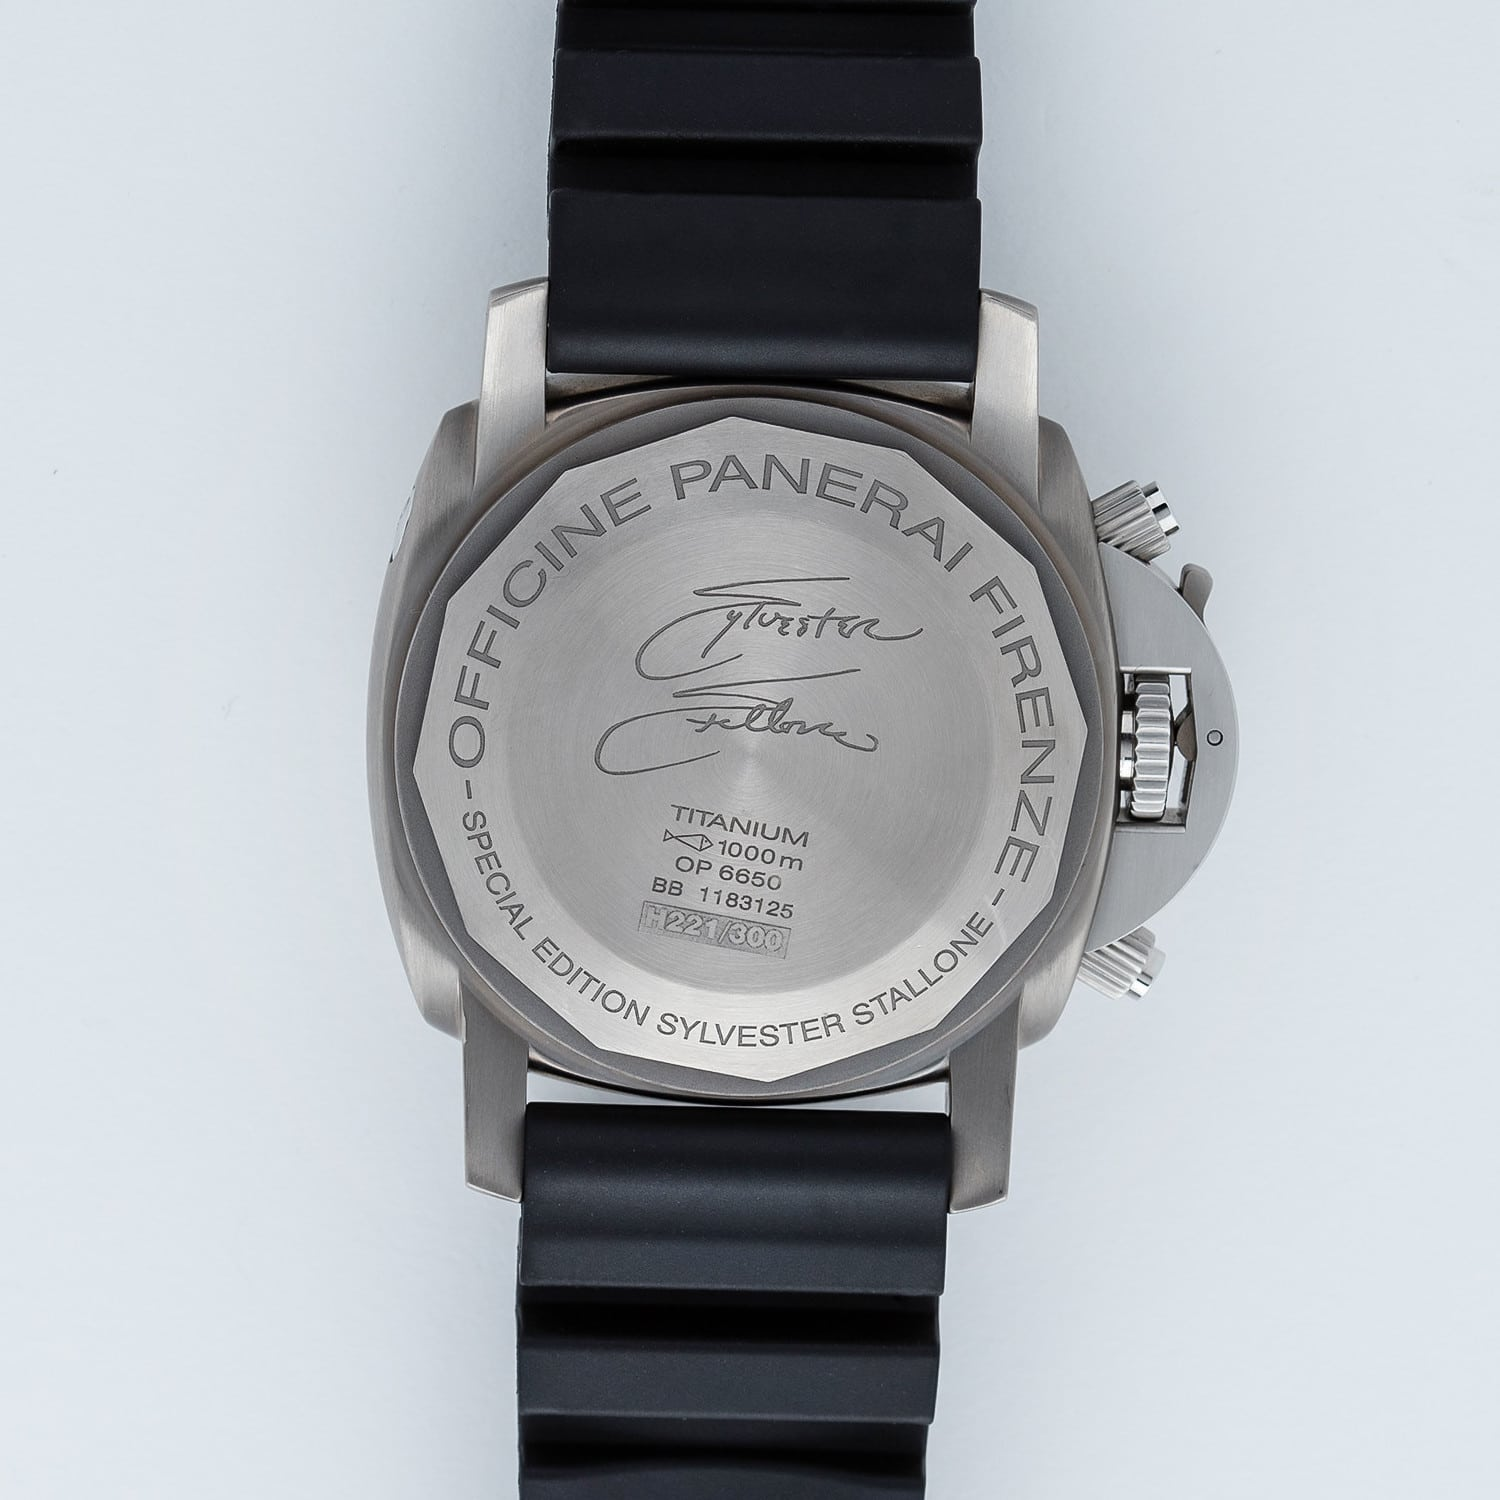 panerai analog watch back side